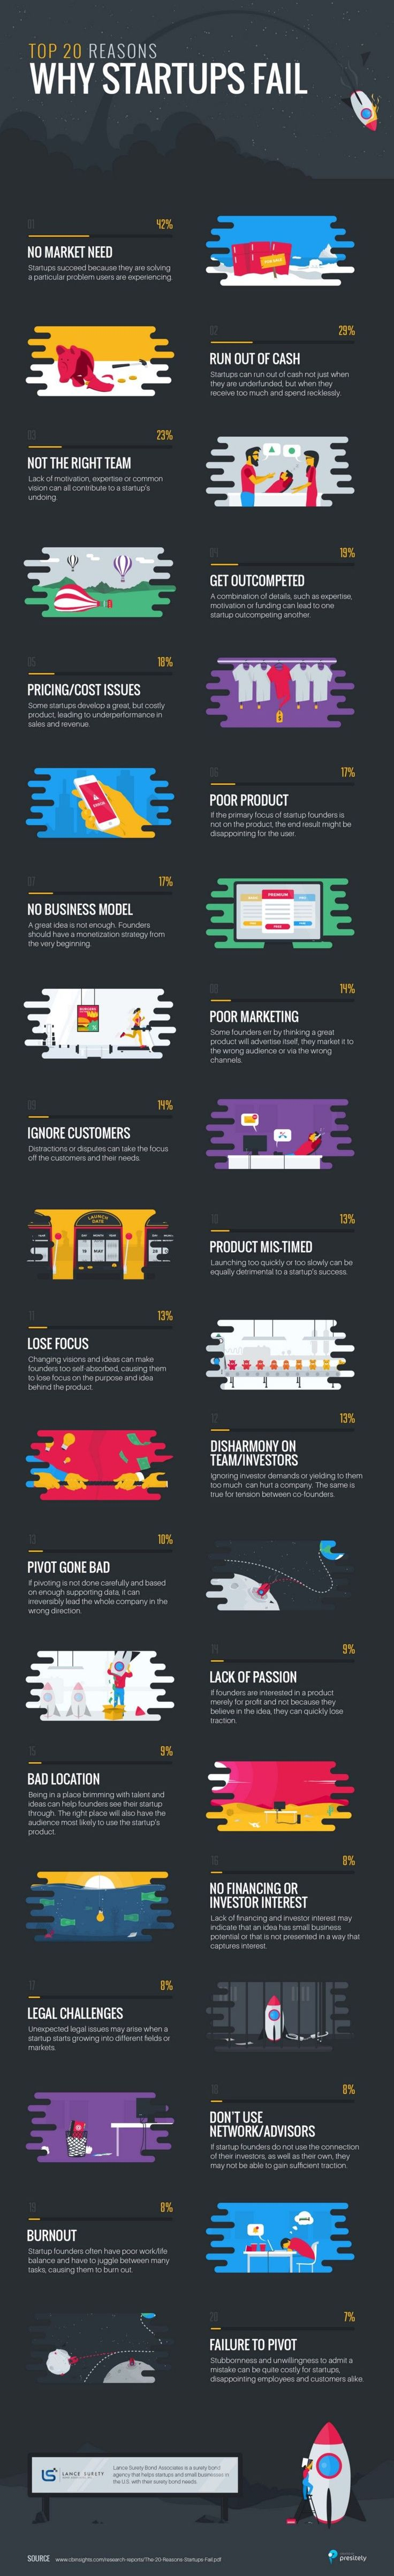 Top 20 Reasons Startups Fail (Infographic) — All Things Marketing and Entrepreneurship — Me